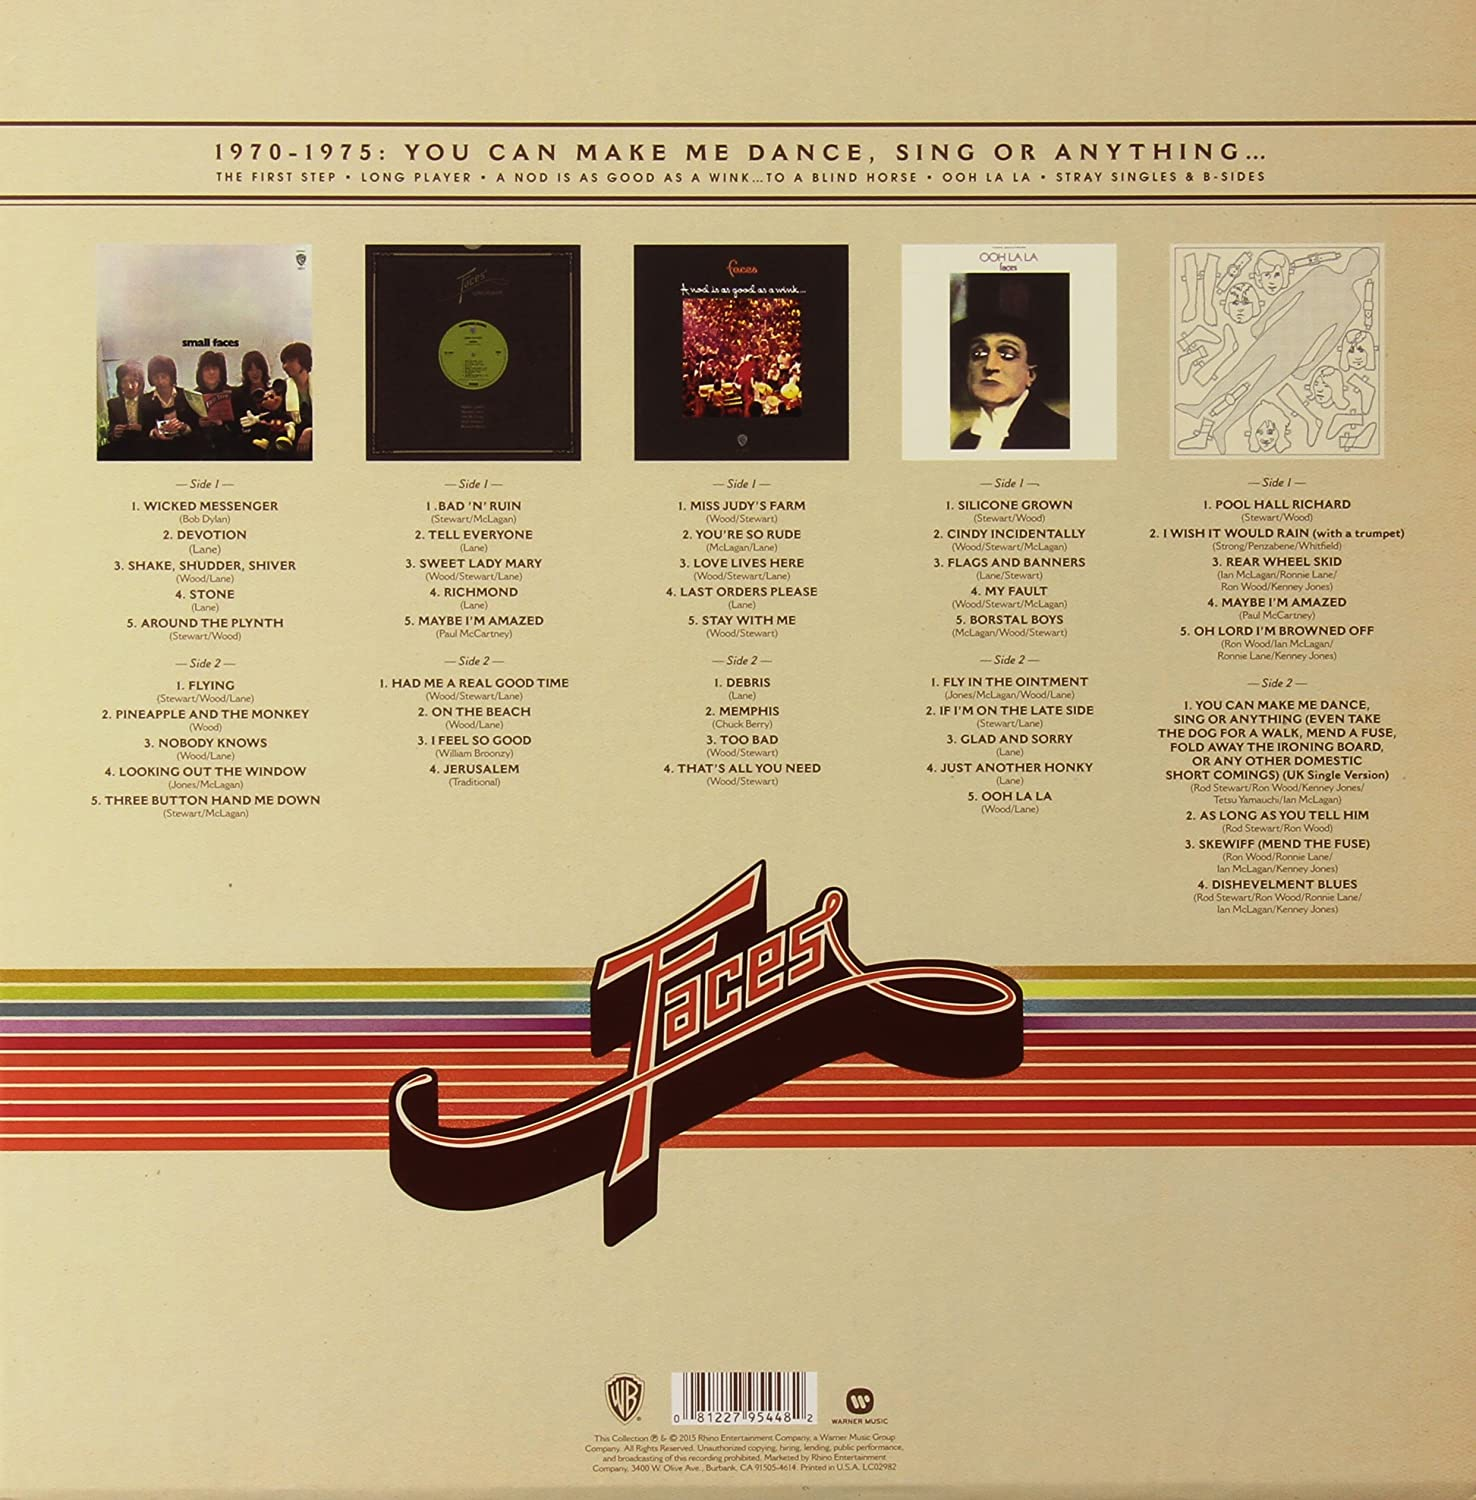 1970-1975: You Can Make Me Dance, Sing Or Anything... [Vinilo]